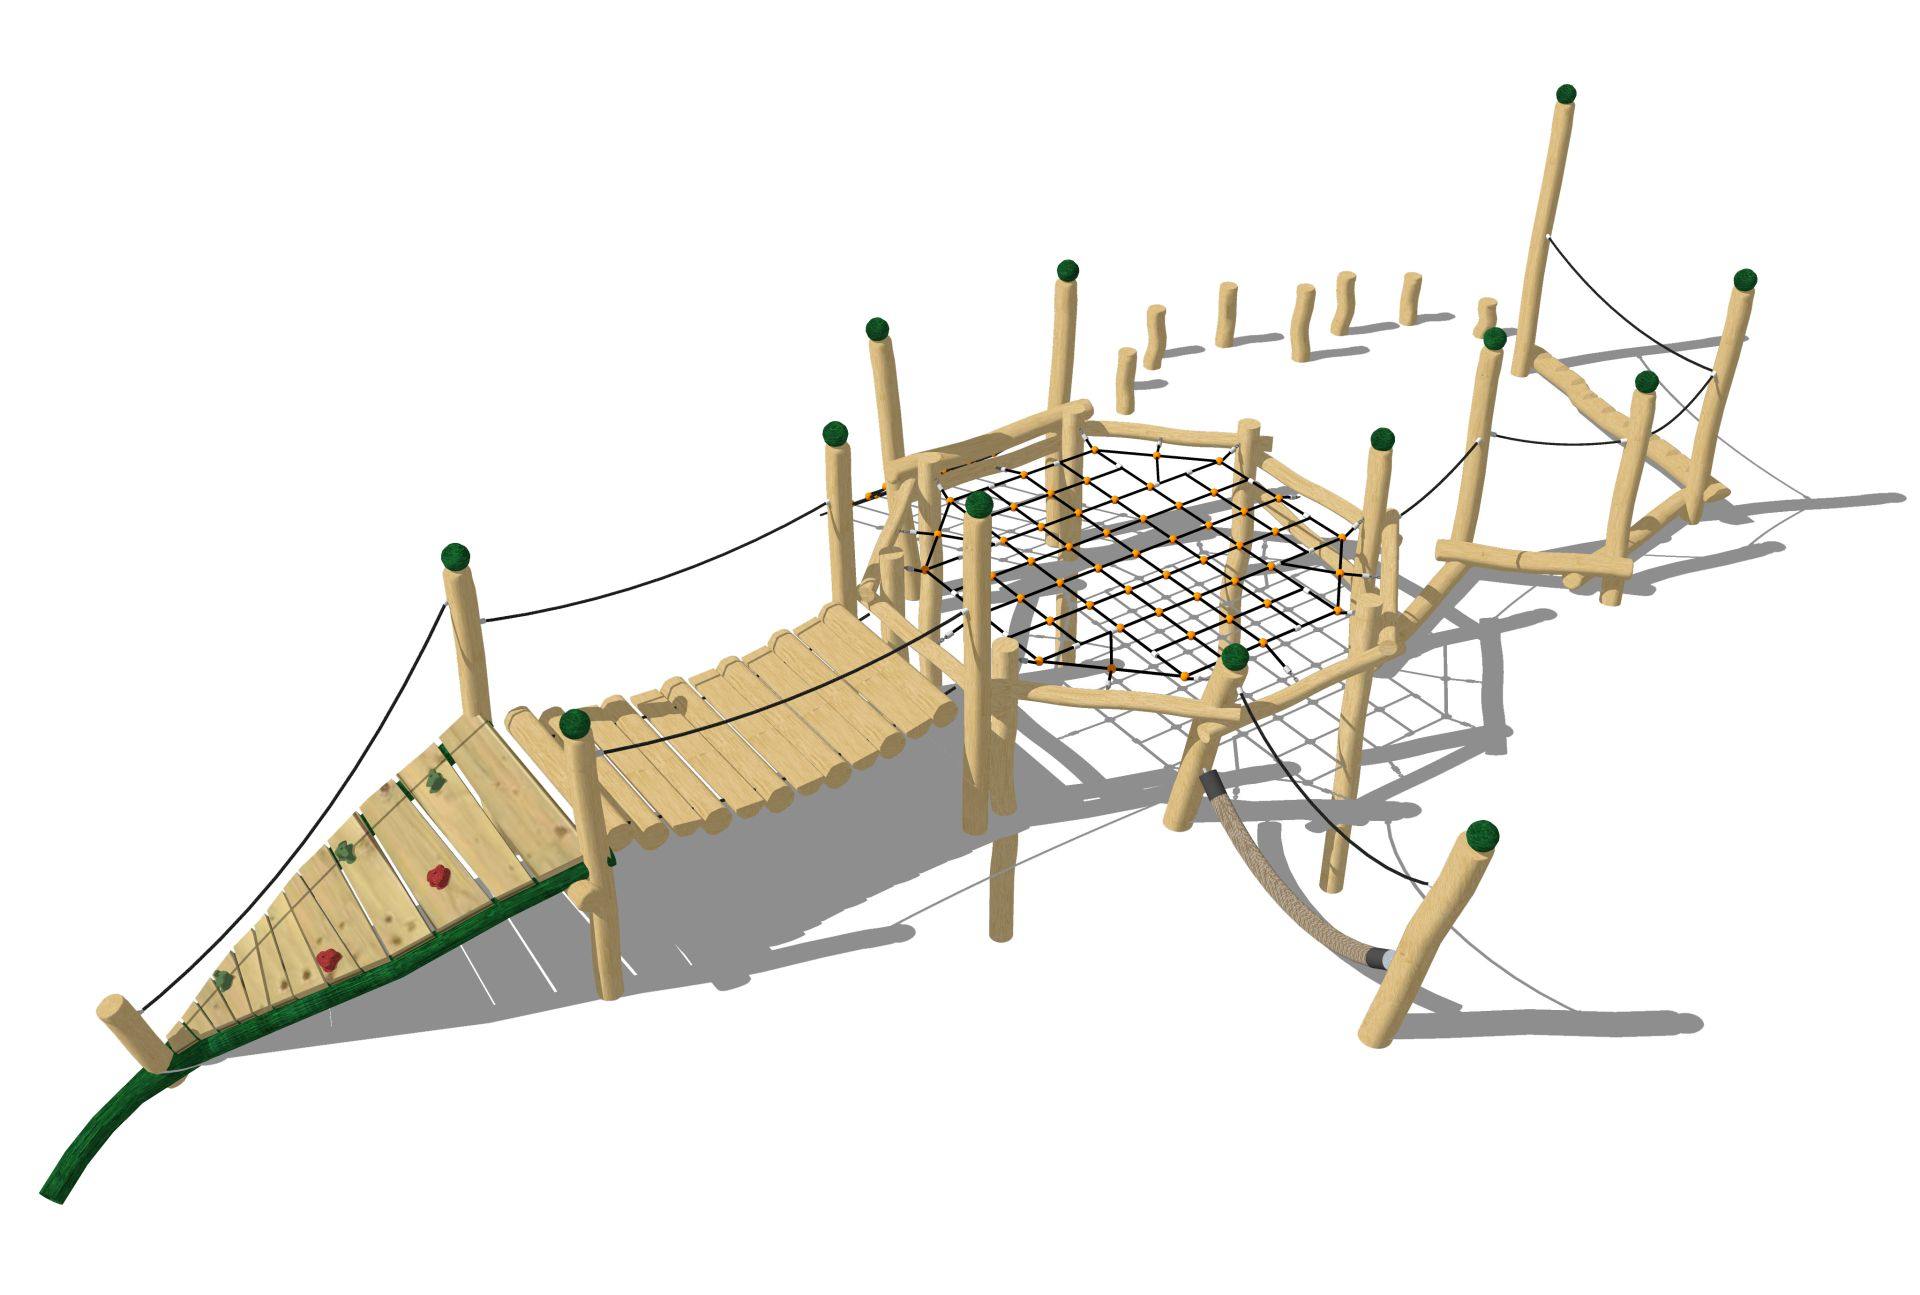 Holzhof COUNTRY (FACILITIES IN ROBINIA WOOD) Gym structure for parkour in robinia and ropes